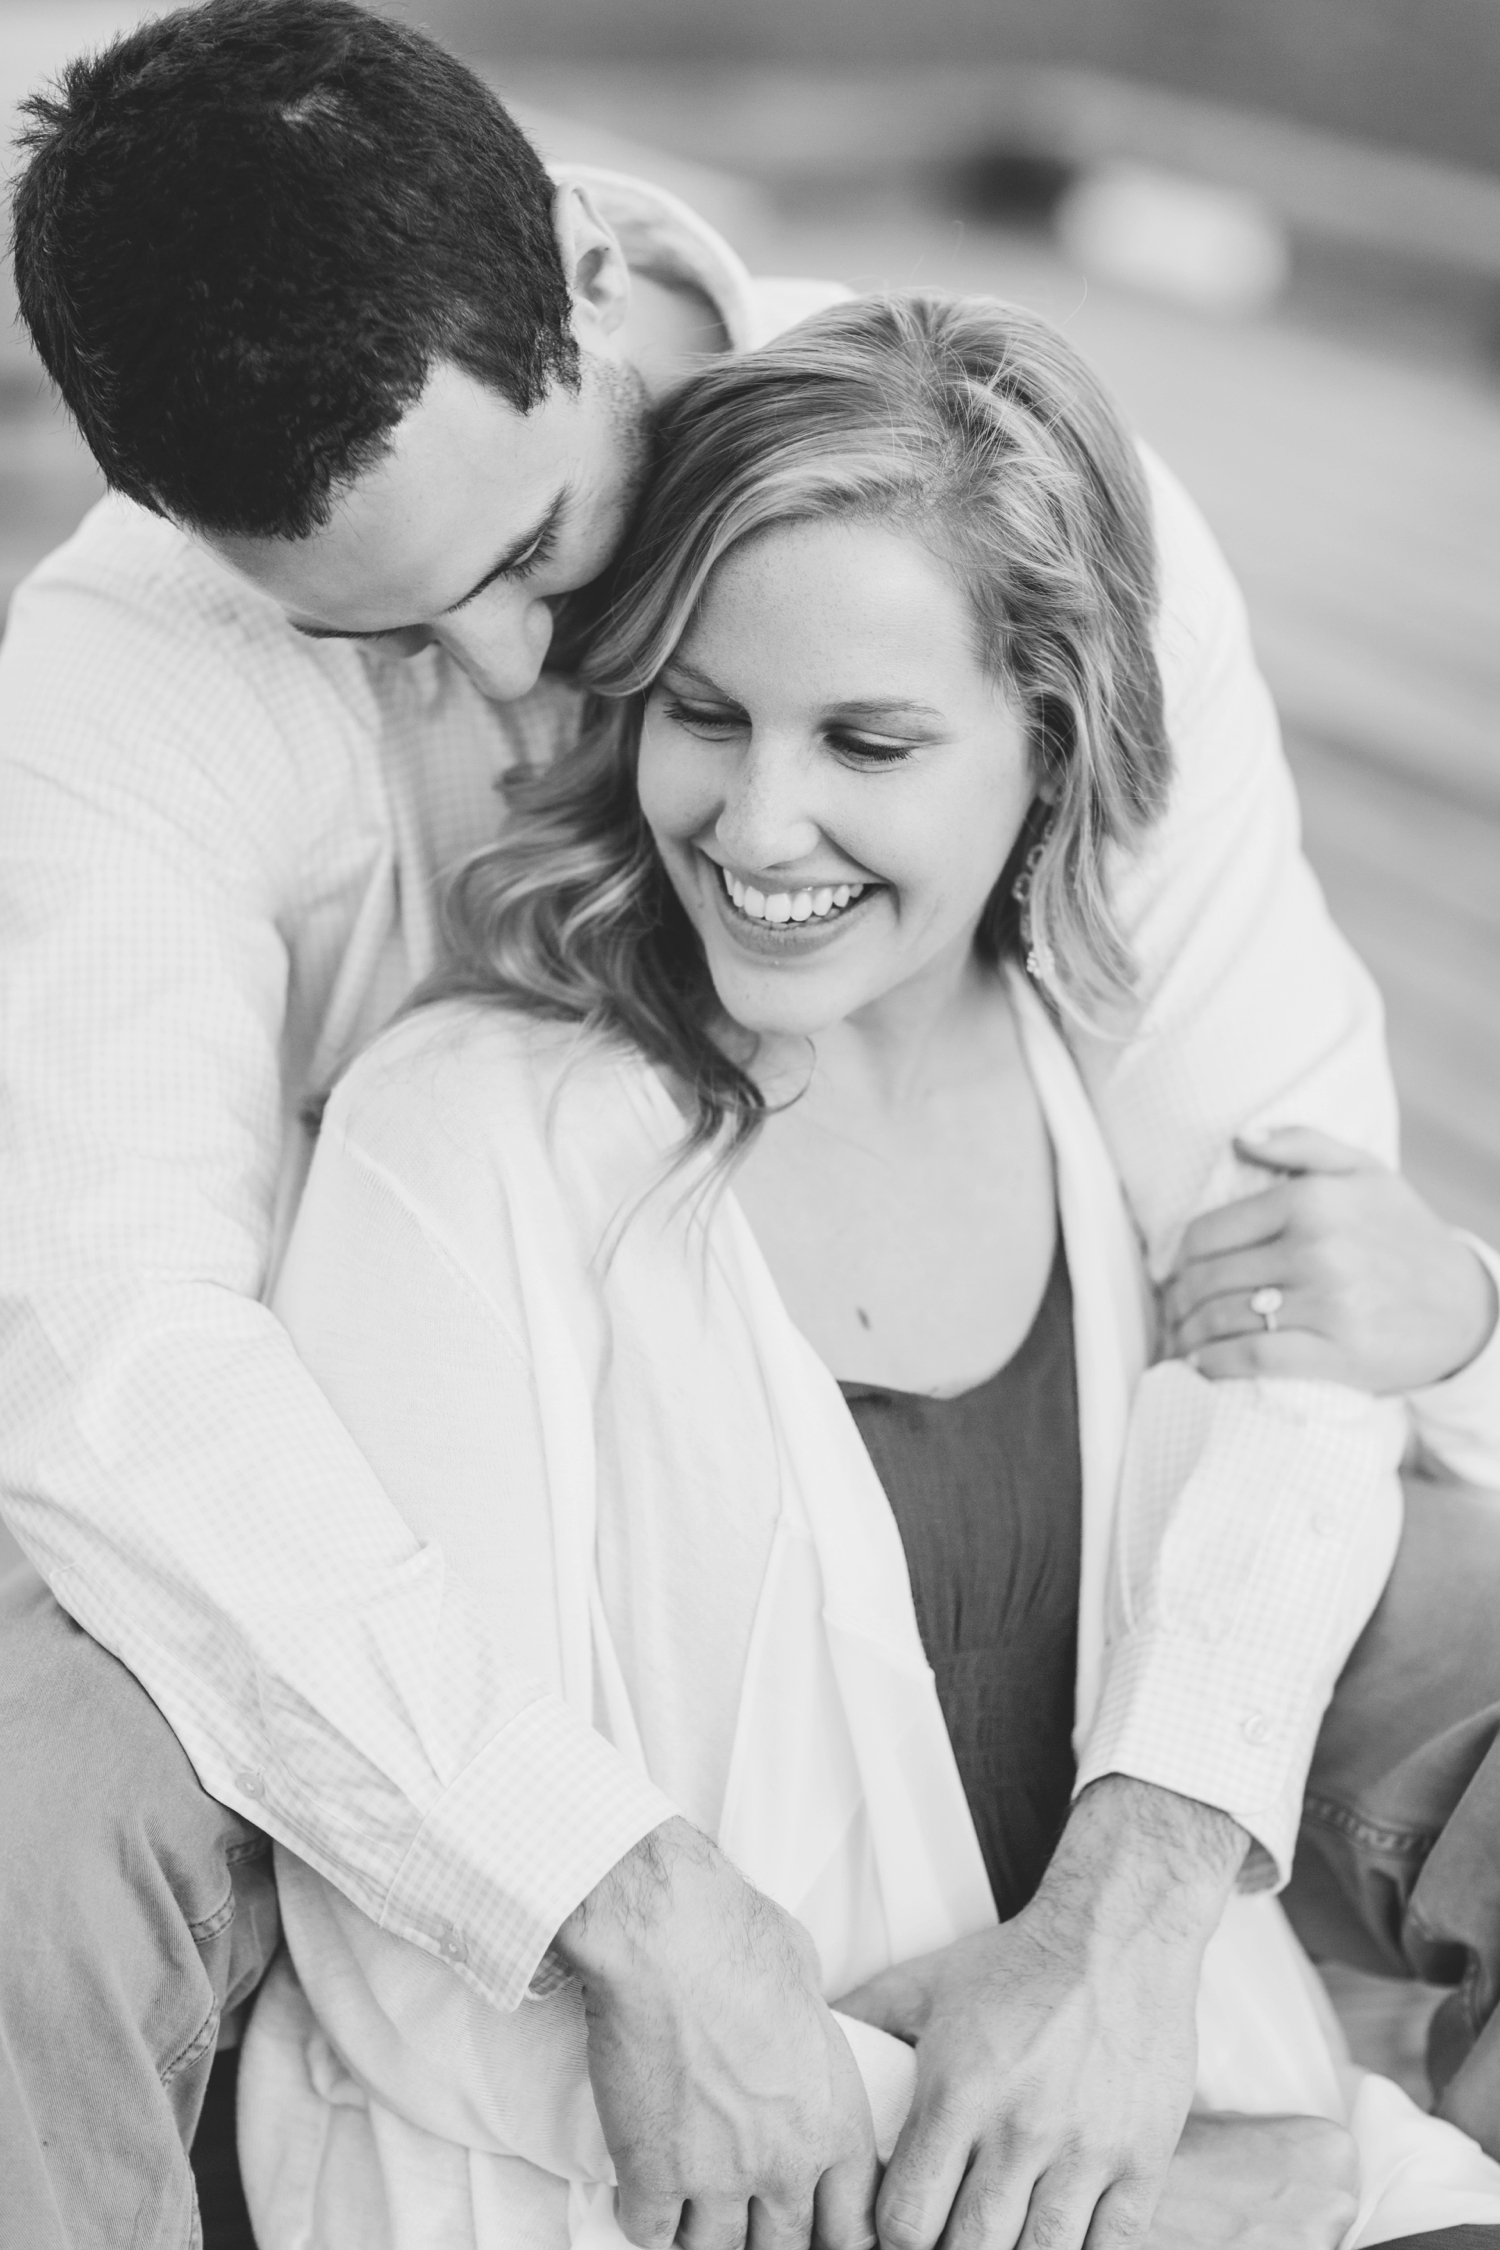 indianapolis_wedding_photographer_golden_hour_engagement_chloe_luka_photography_6144.jpg